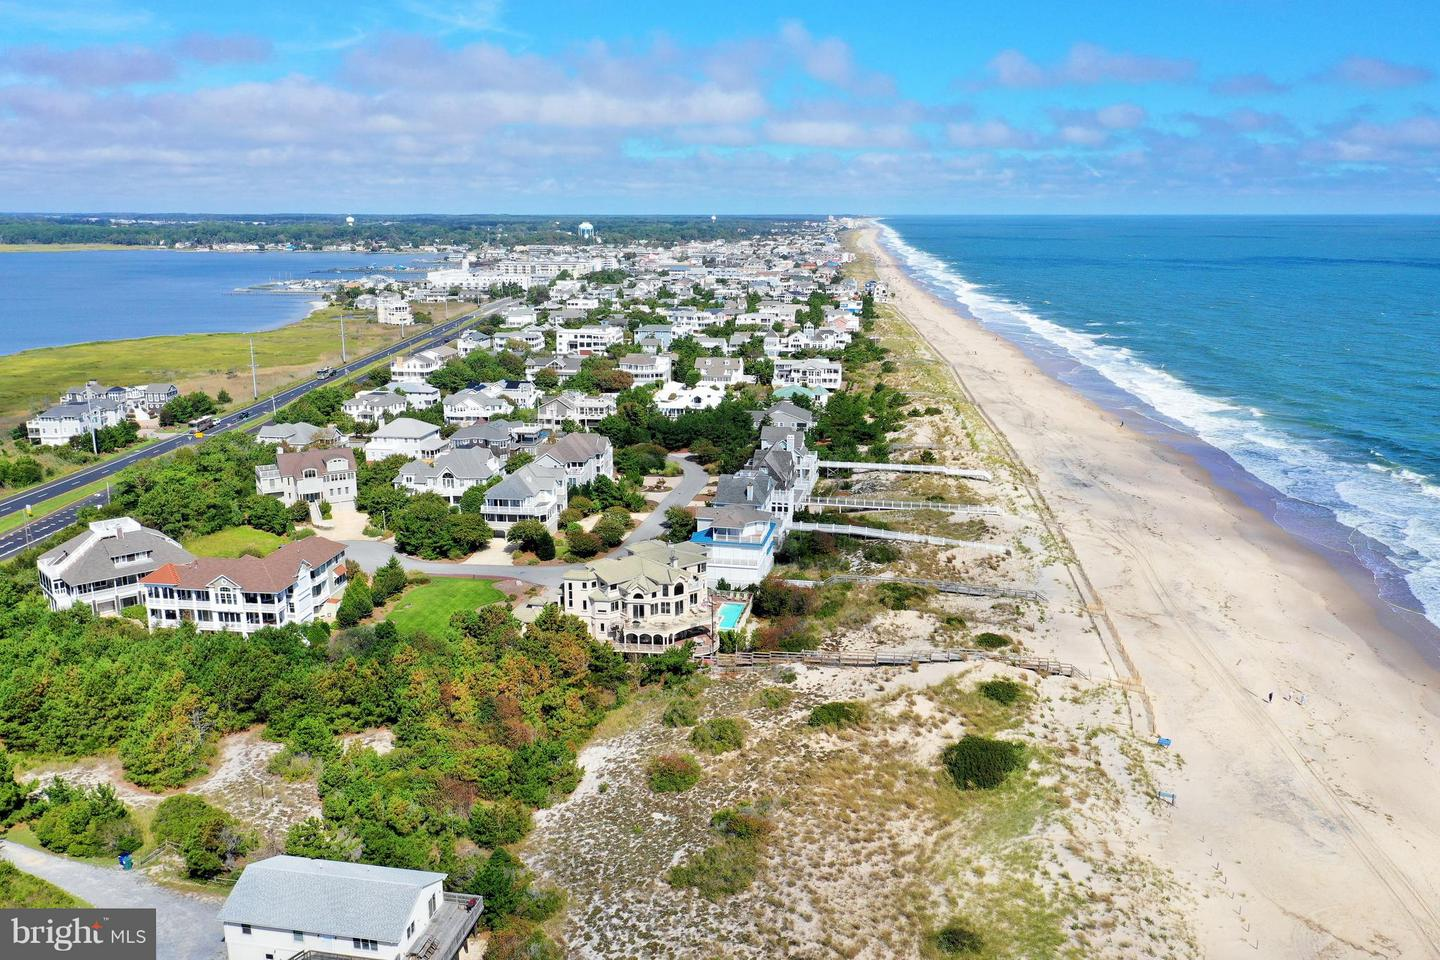 1002293530-300720130617-2018-09-25-15-08-25 31 Hall Ave | Rehoboth Beach, De Real Estate For Sale | MLS# 1002293530  - Suzanne Macnab